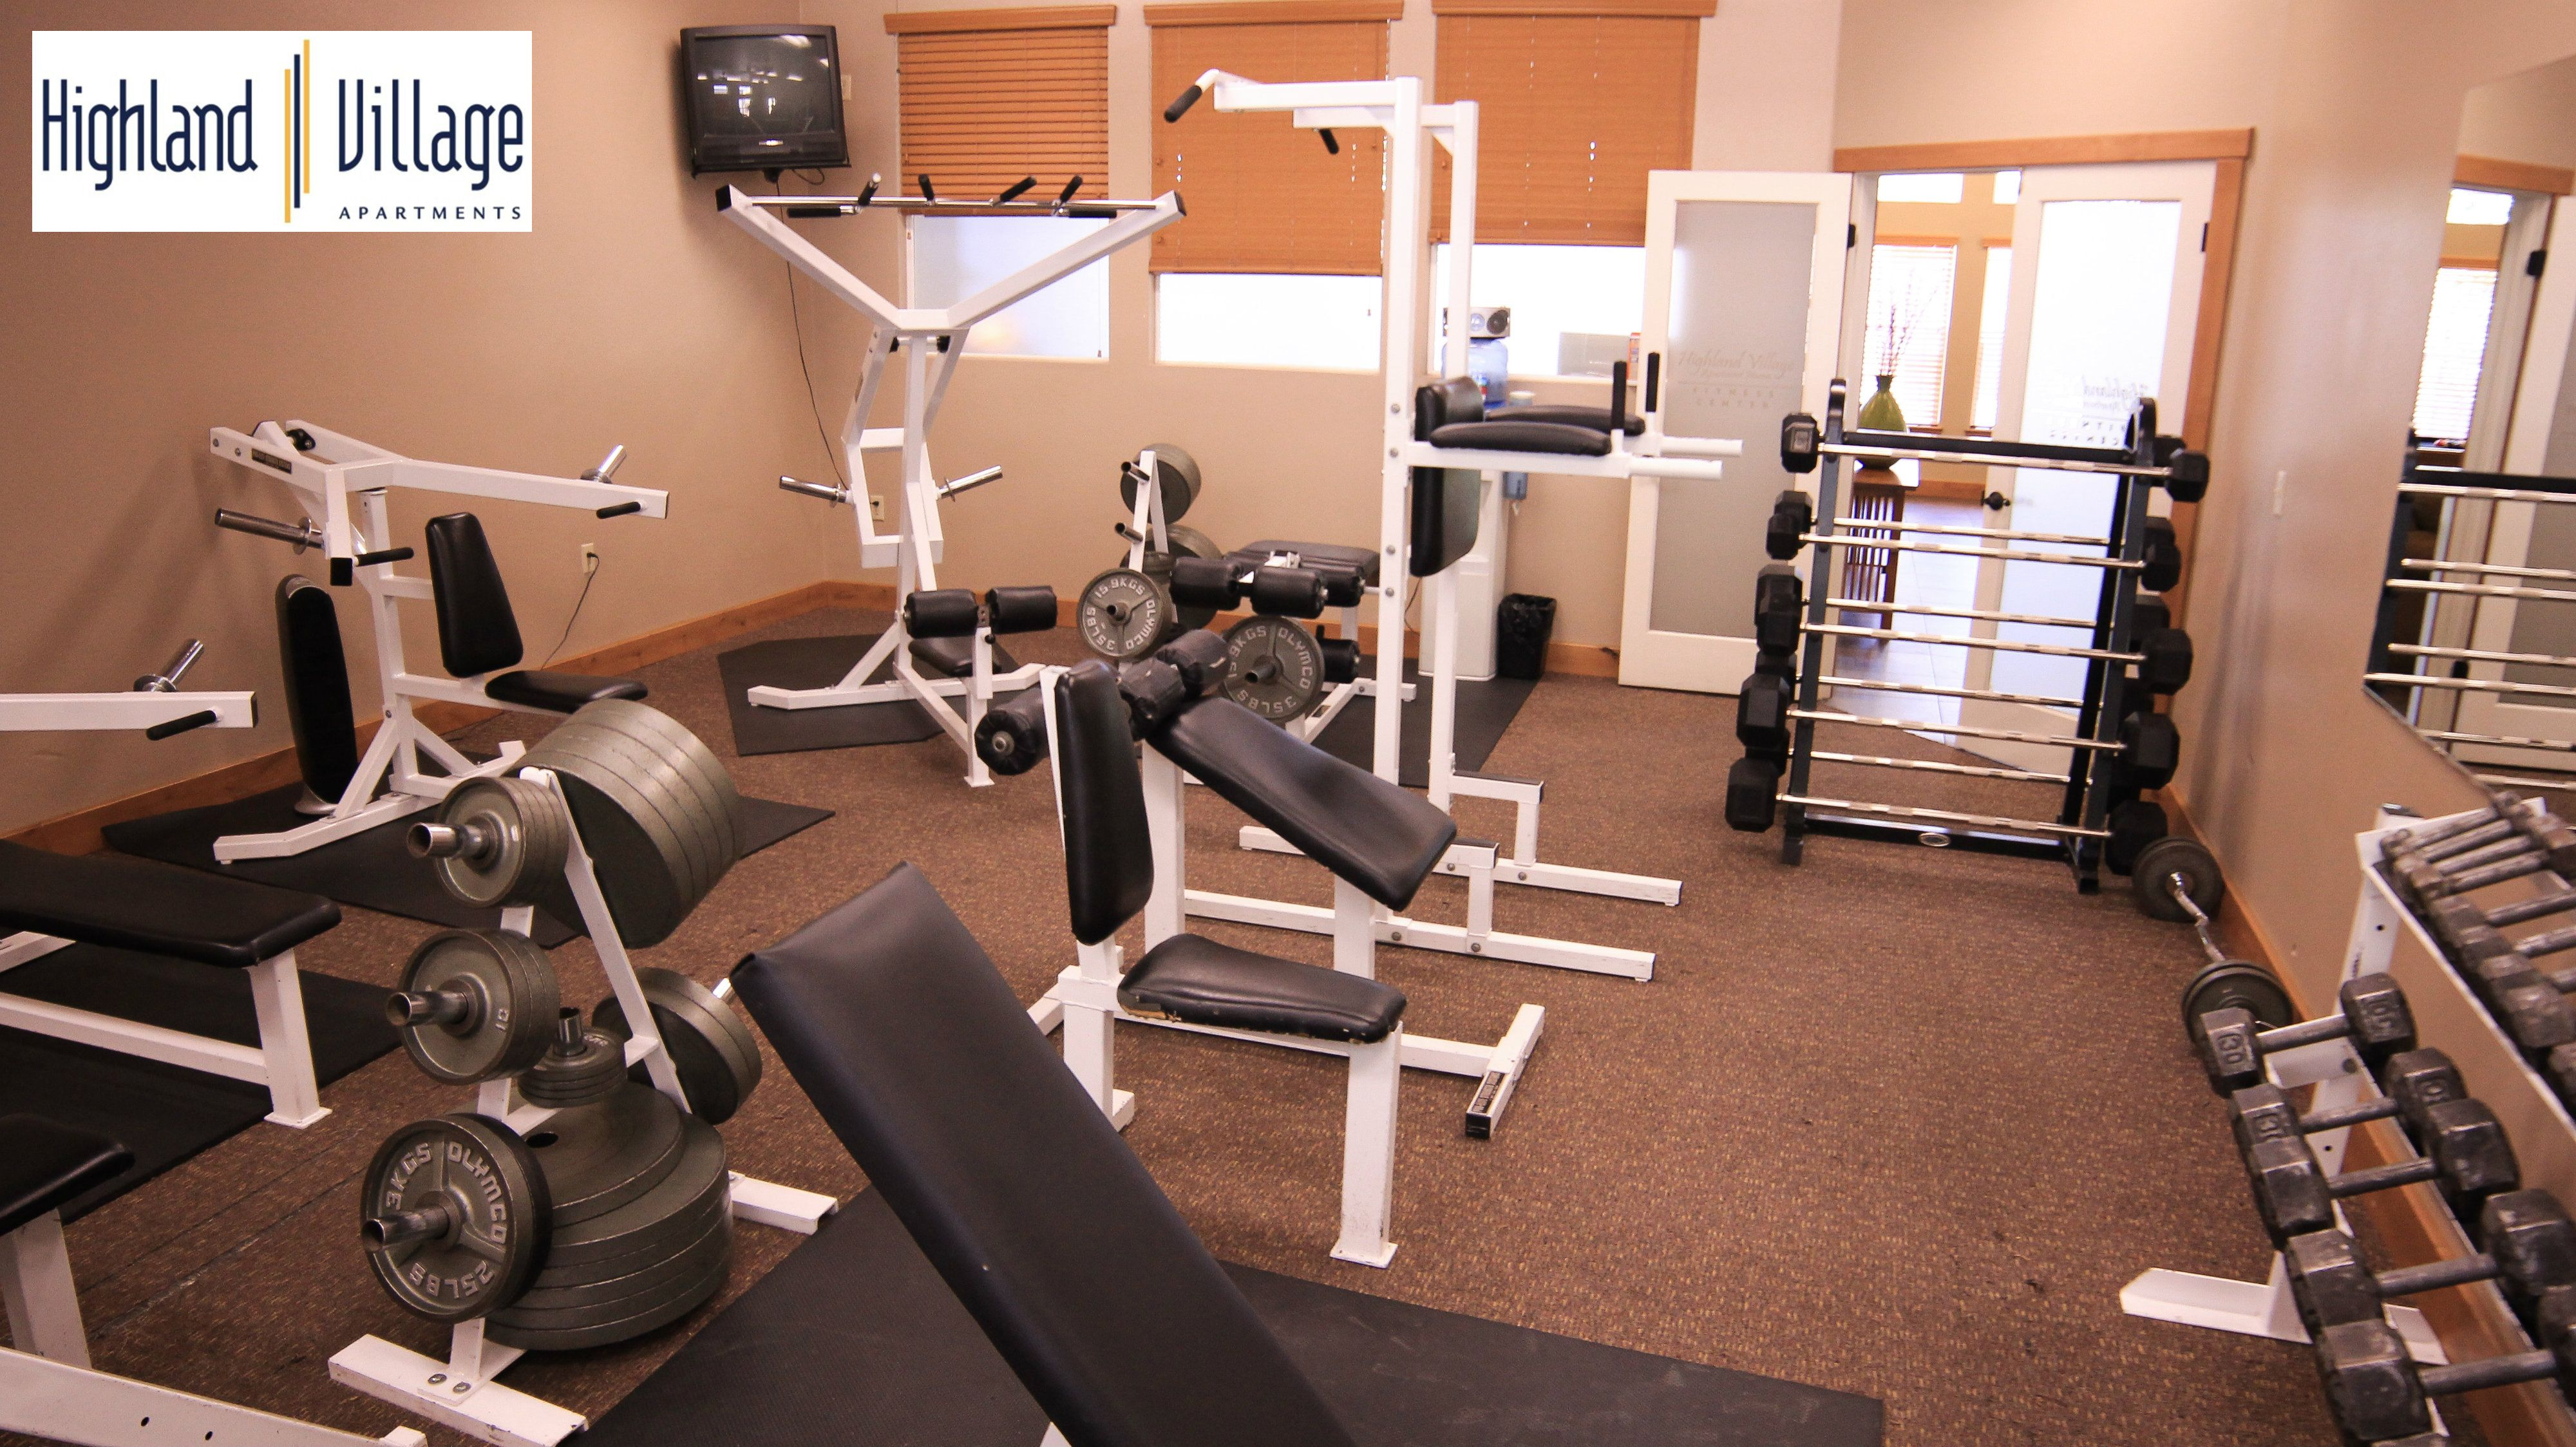 Highland Village Apartments Fitness Center, Flagstaff, AZ